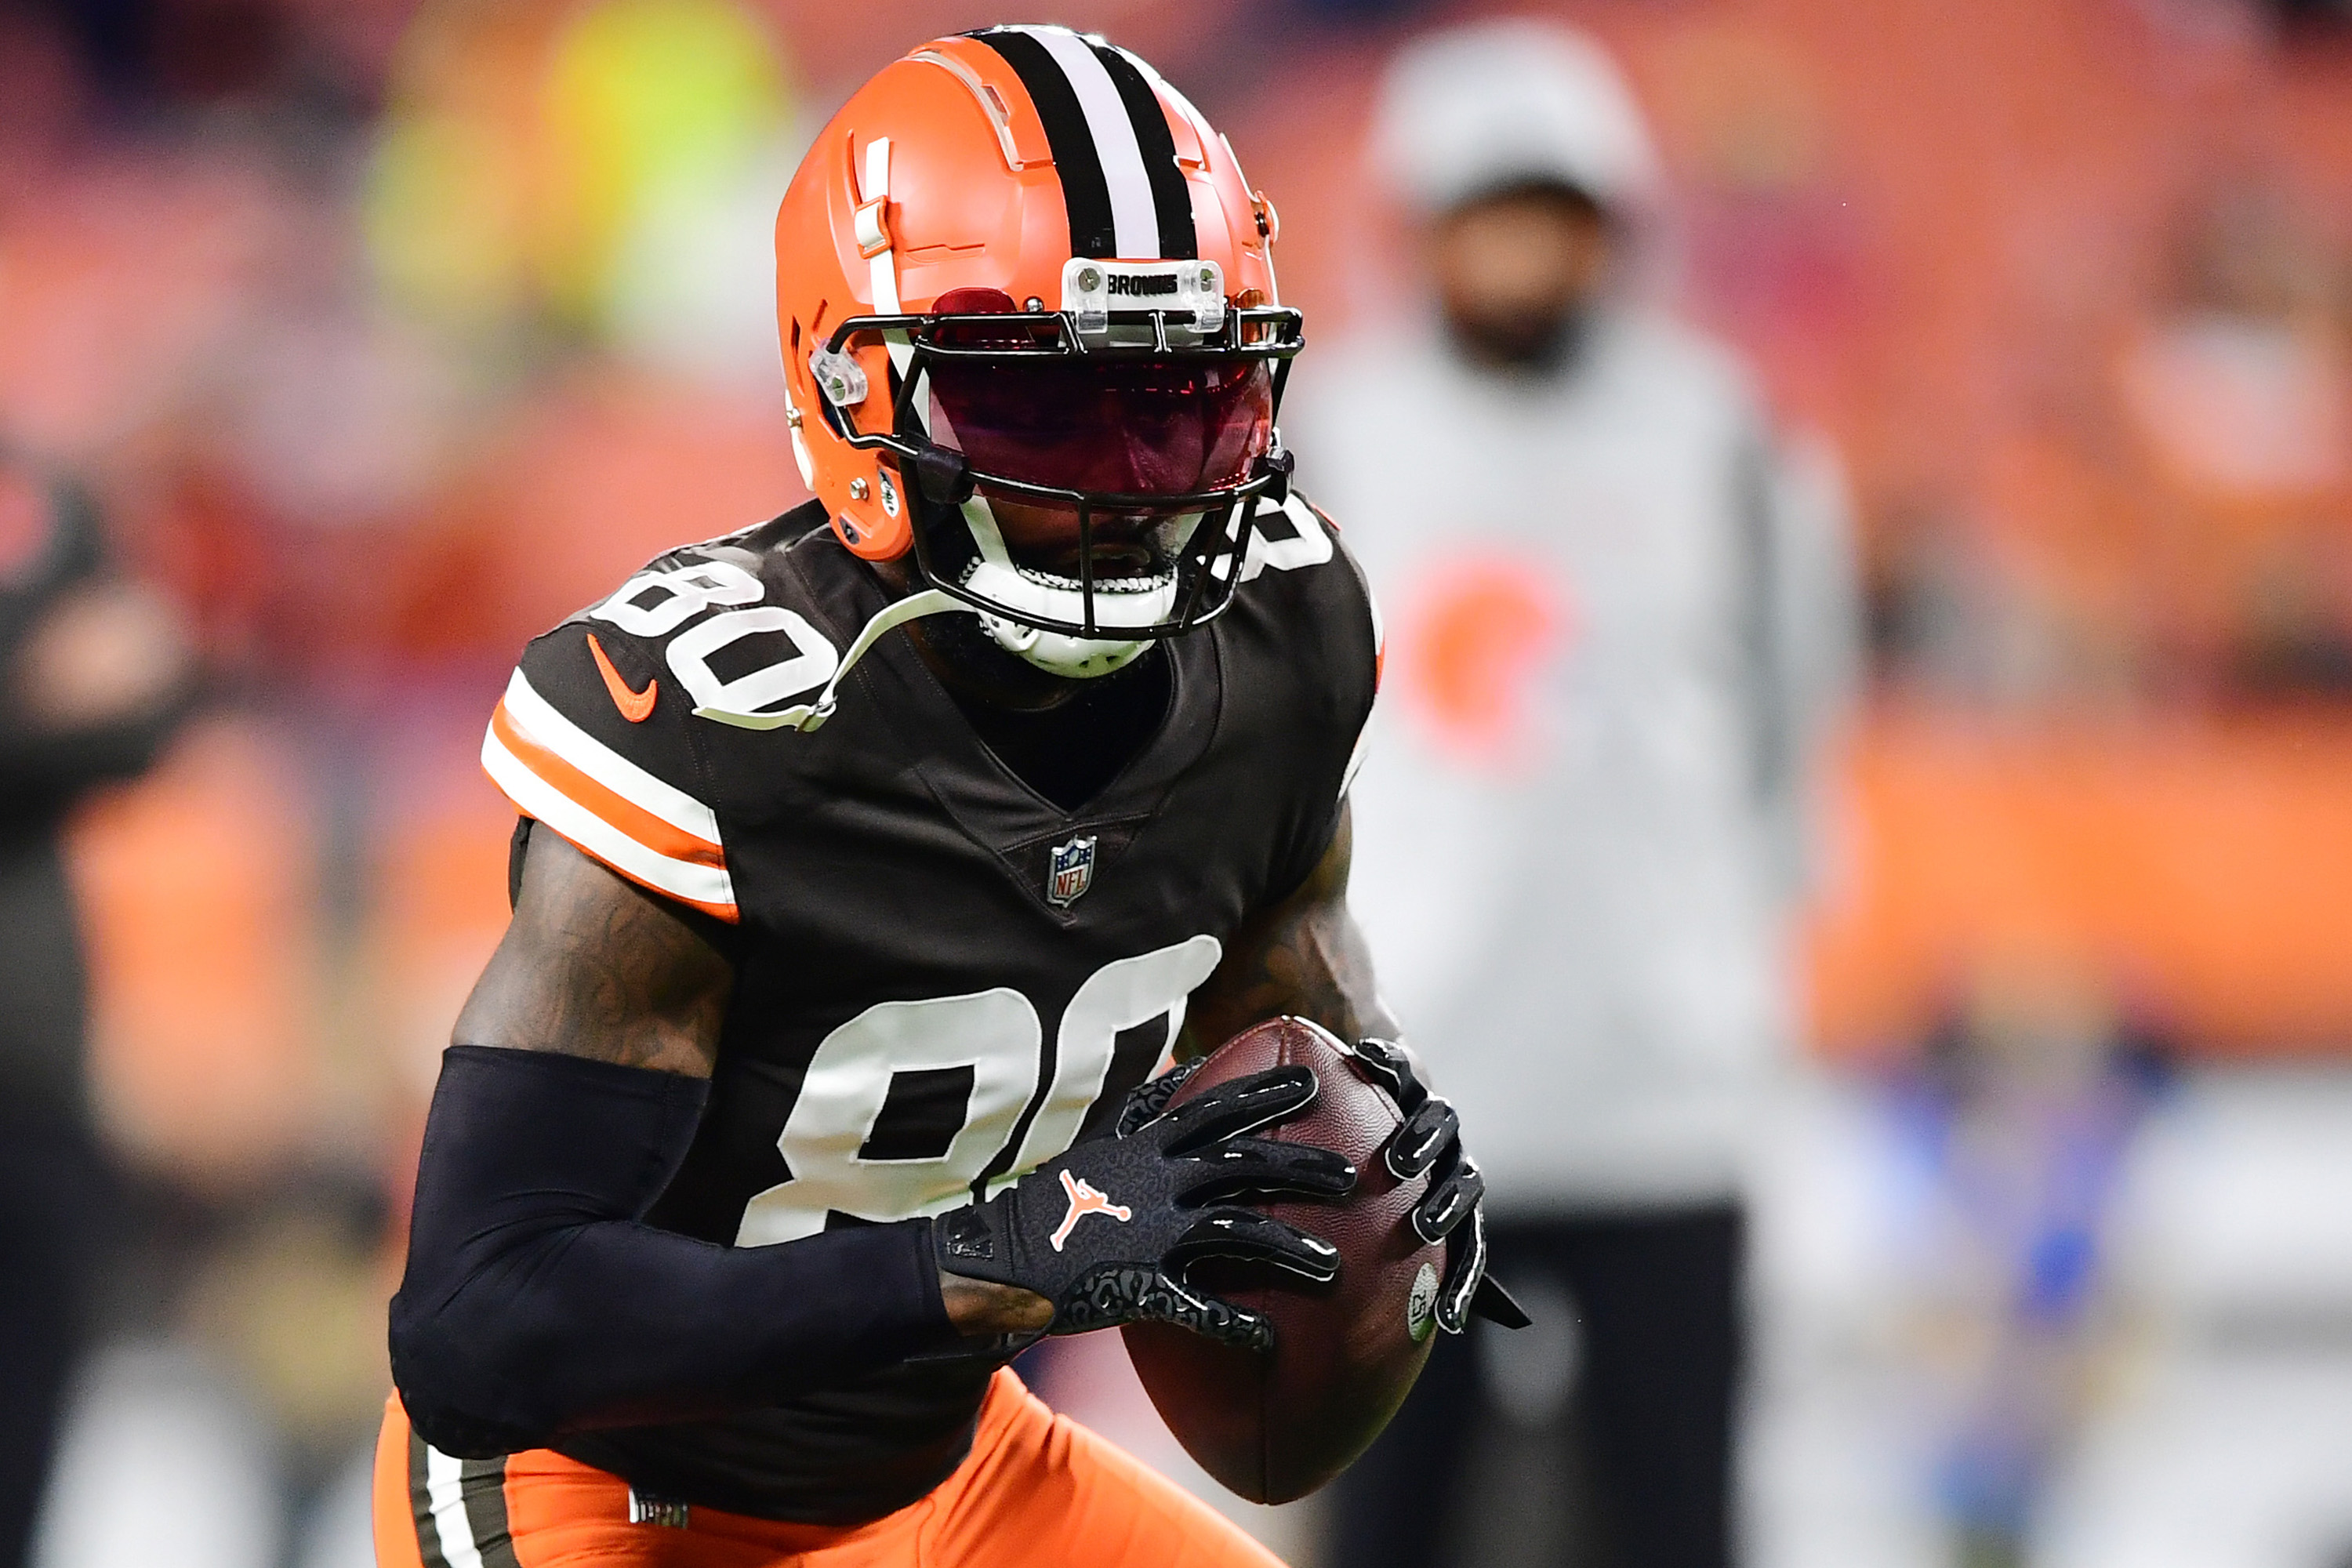 Jarvis Landry #80 of the Cleveland Browns warms up before a game against the Denver Broncos at FirstEnergy Stadium on October 21, 2021 in Cleveland, Ohio.